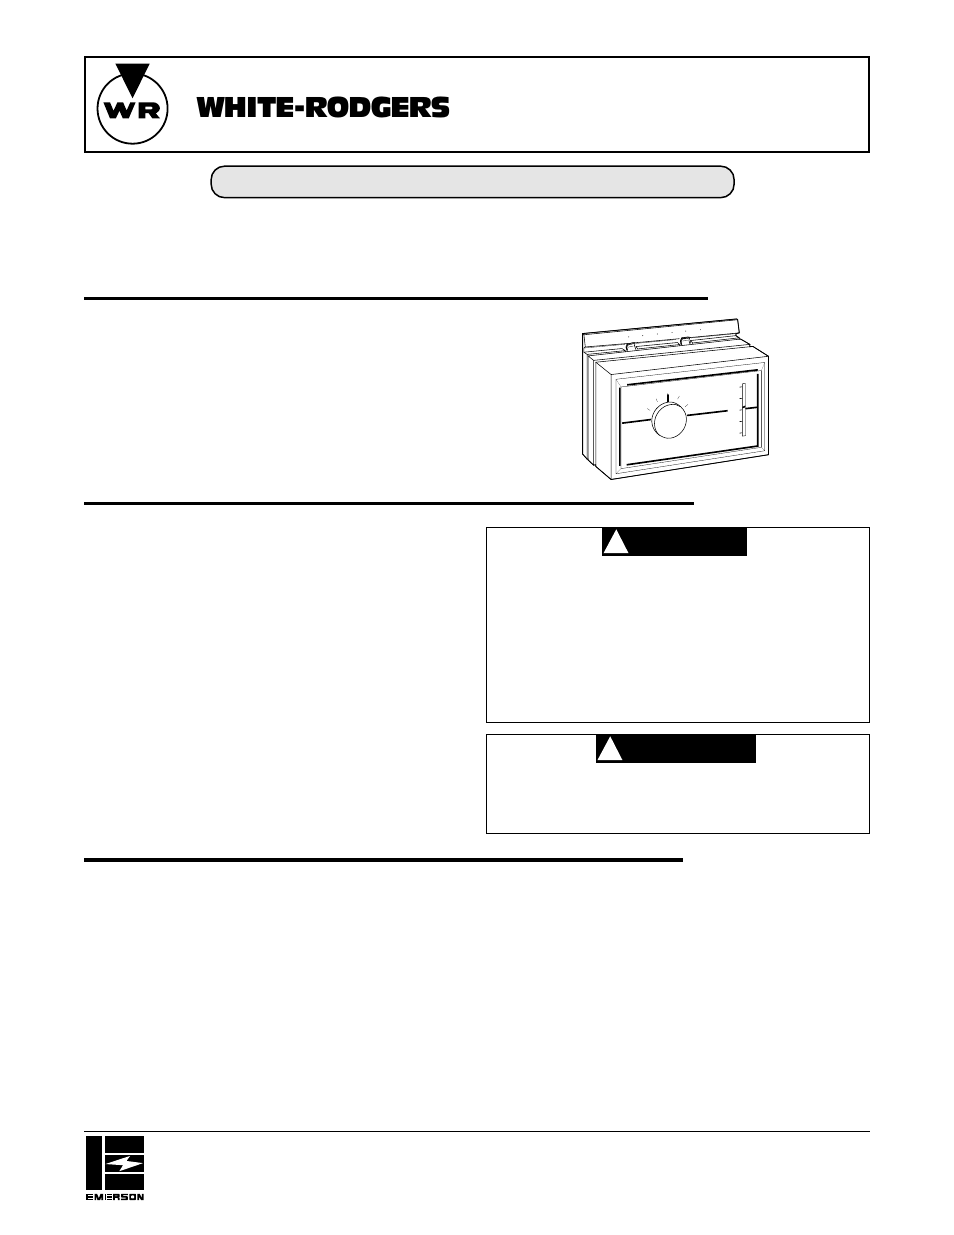 White Rodgers 1F58 User Manual | 6 pages